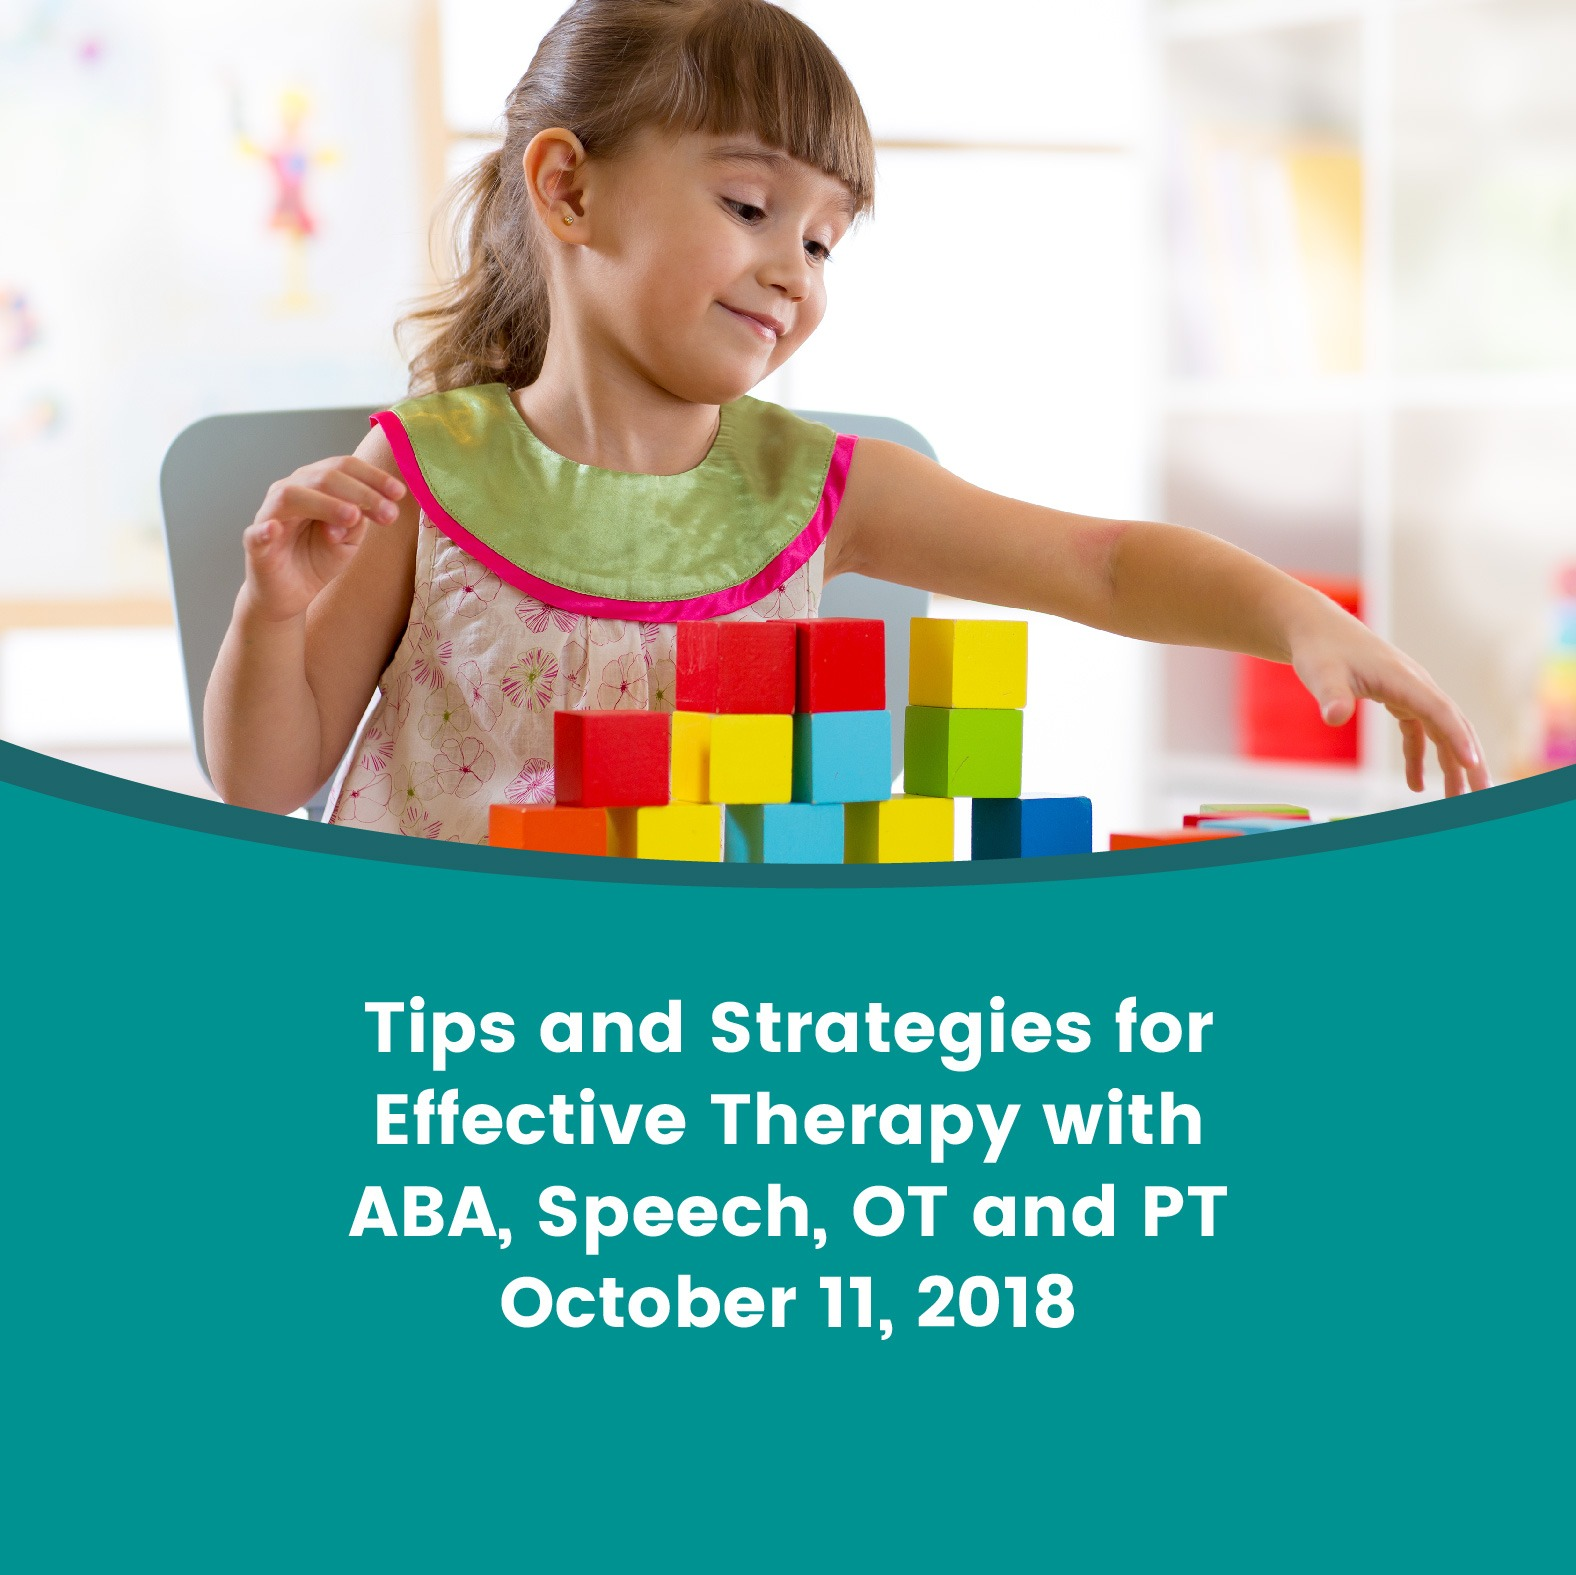 Tips and Strategies for Effective Therapy - ABA Treatment | Trumpet